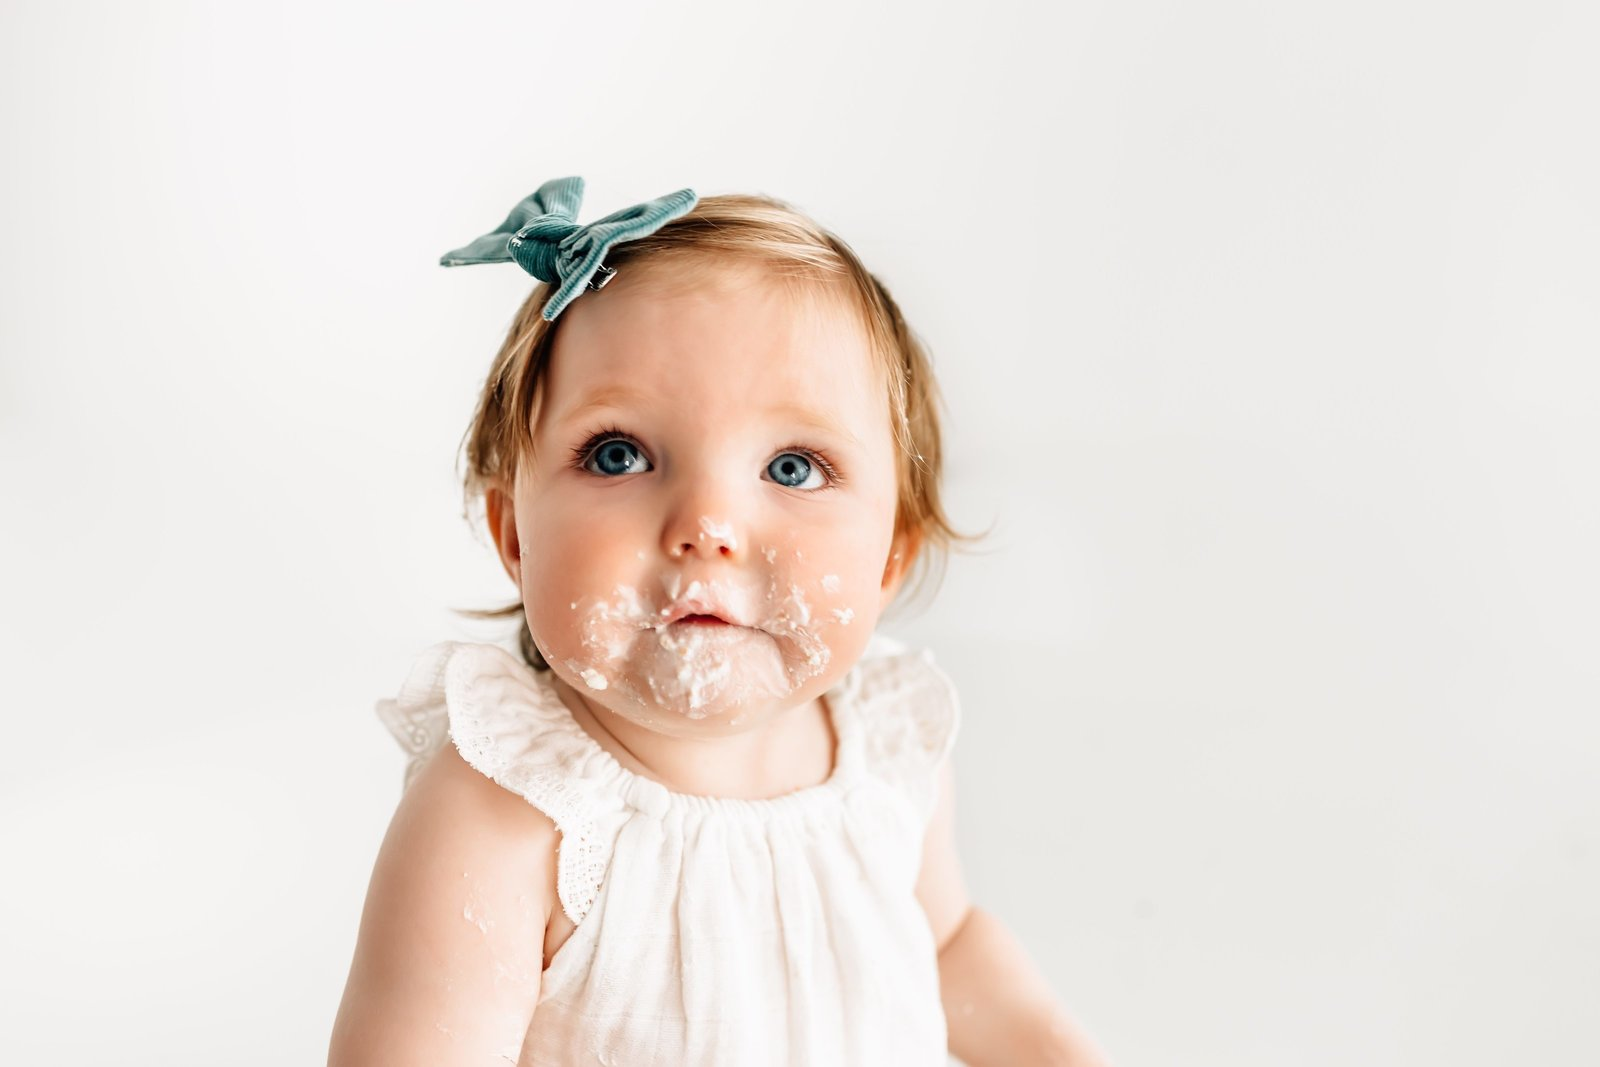 St_Louis_Baby_Photographer_Kelly_Laramore_Photography_132